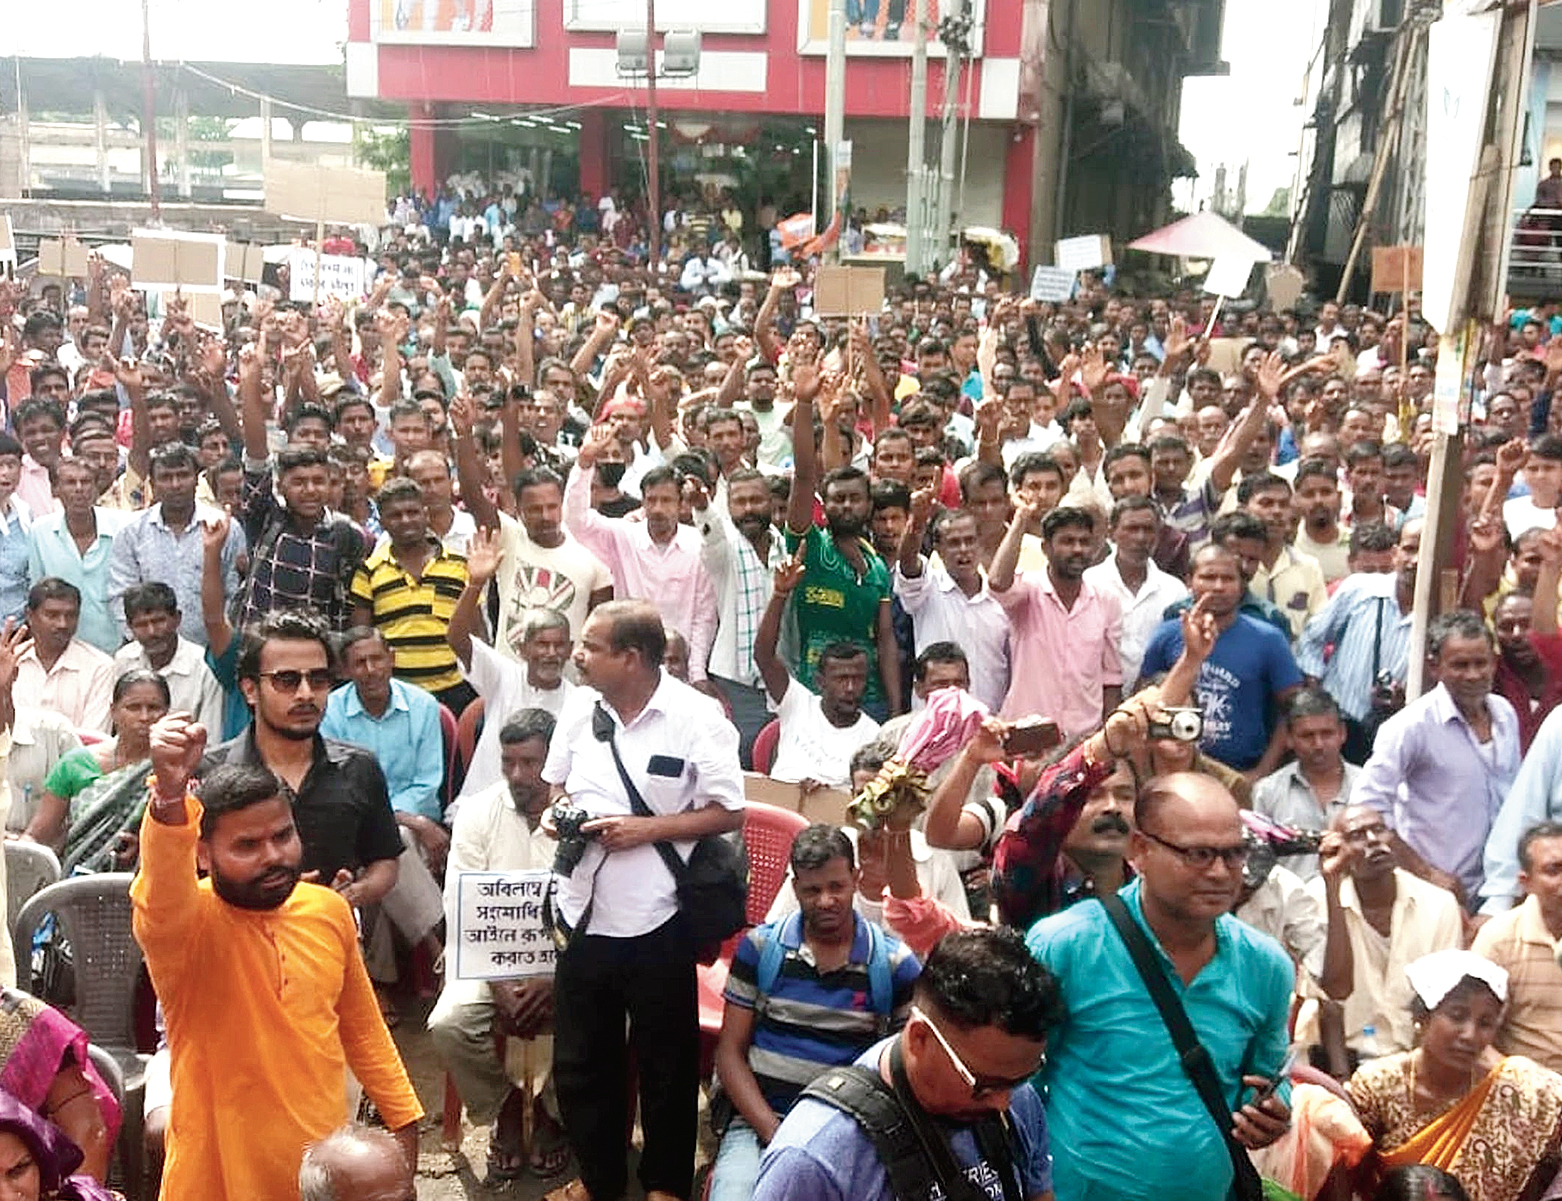 North East Linguistic & Ethnic Coordination Committee members protest in Silchar on Tuesday.